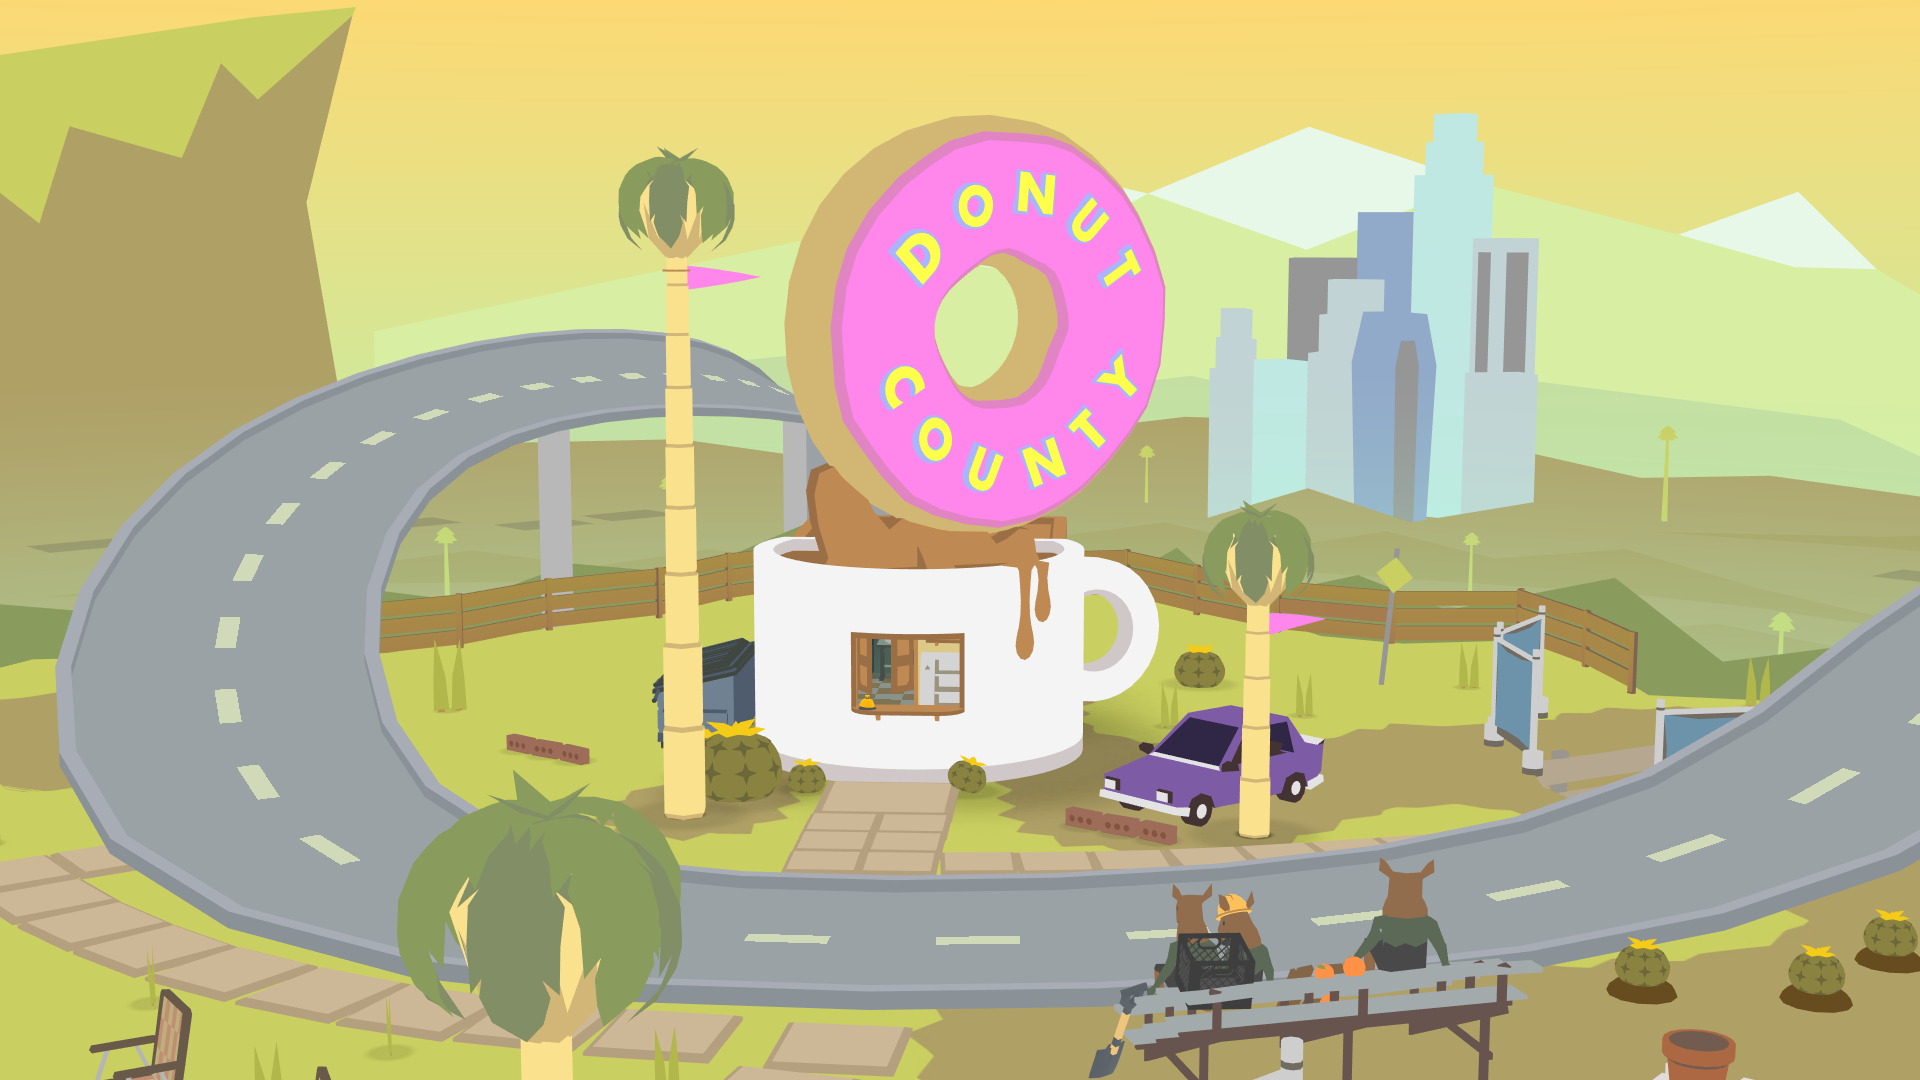 Just a normal donut shop